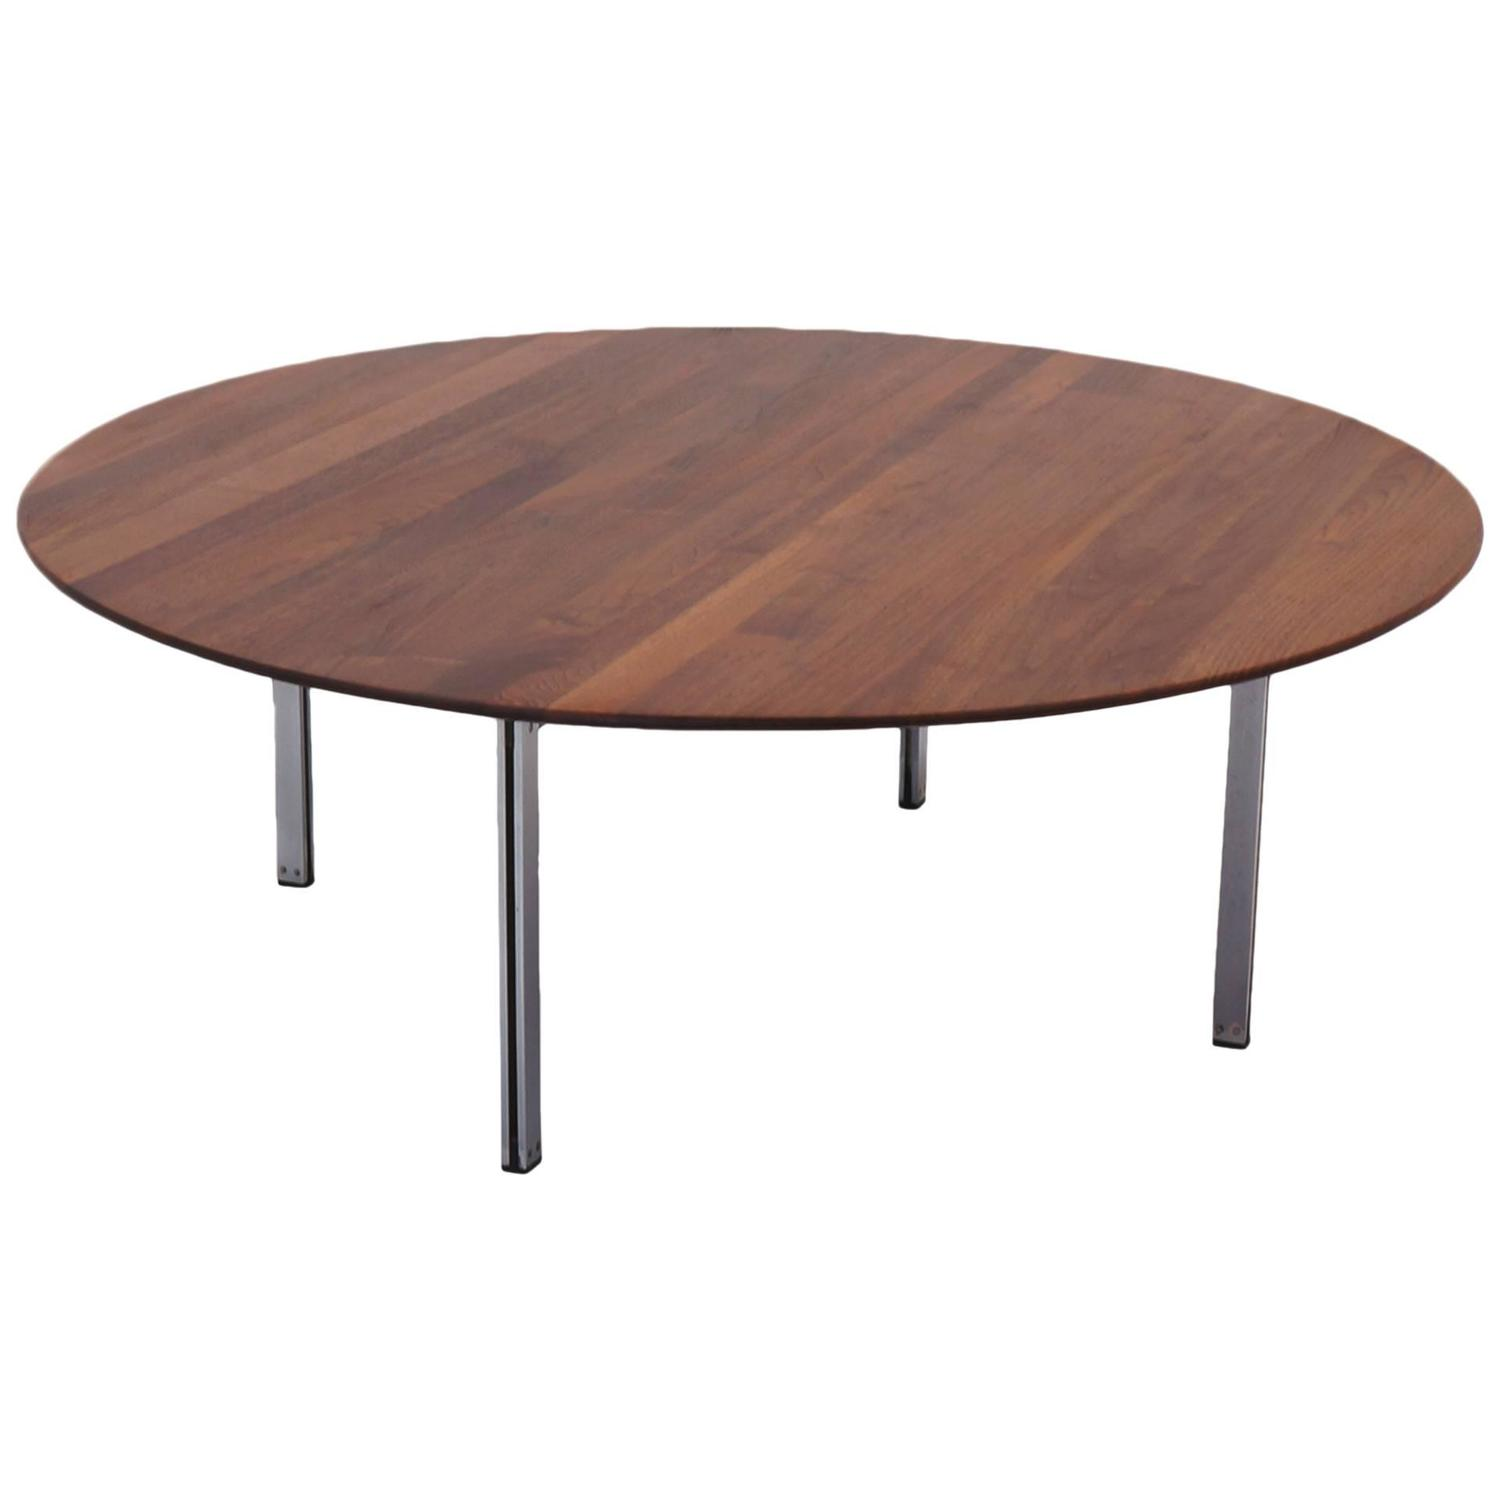 Florence Knoll Coffee Table Parallel Bar Series Excellent Condition At 1stdibs